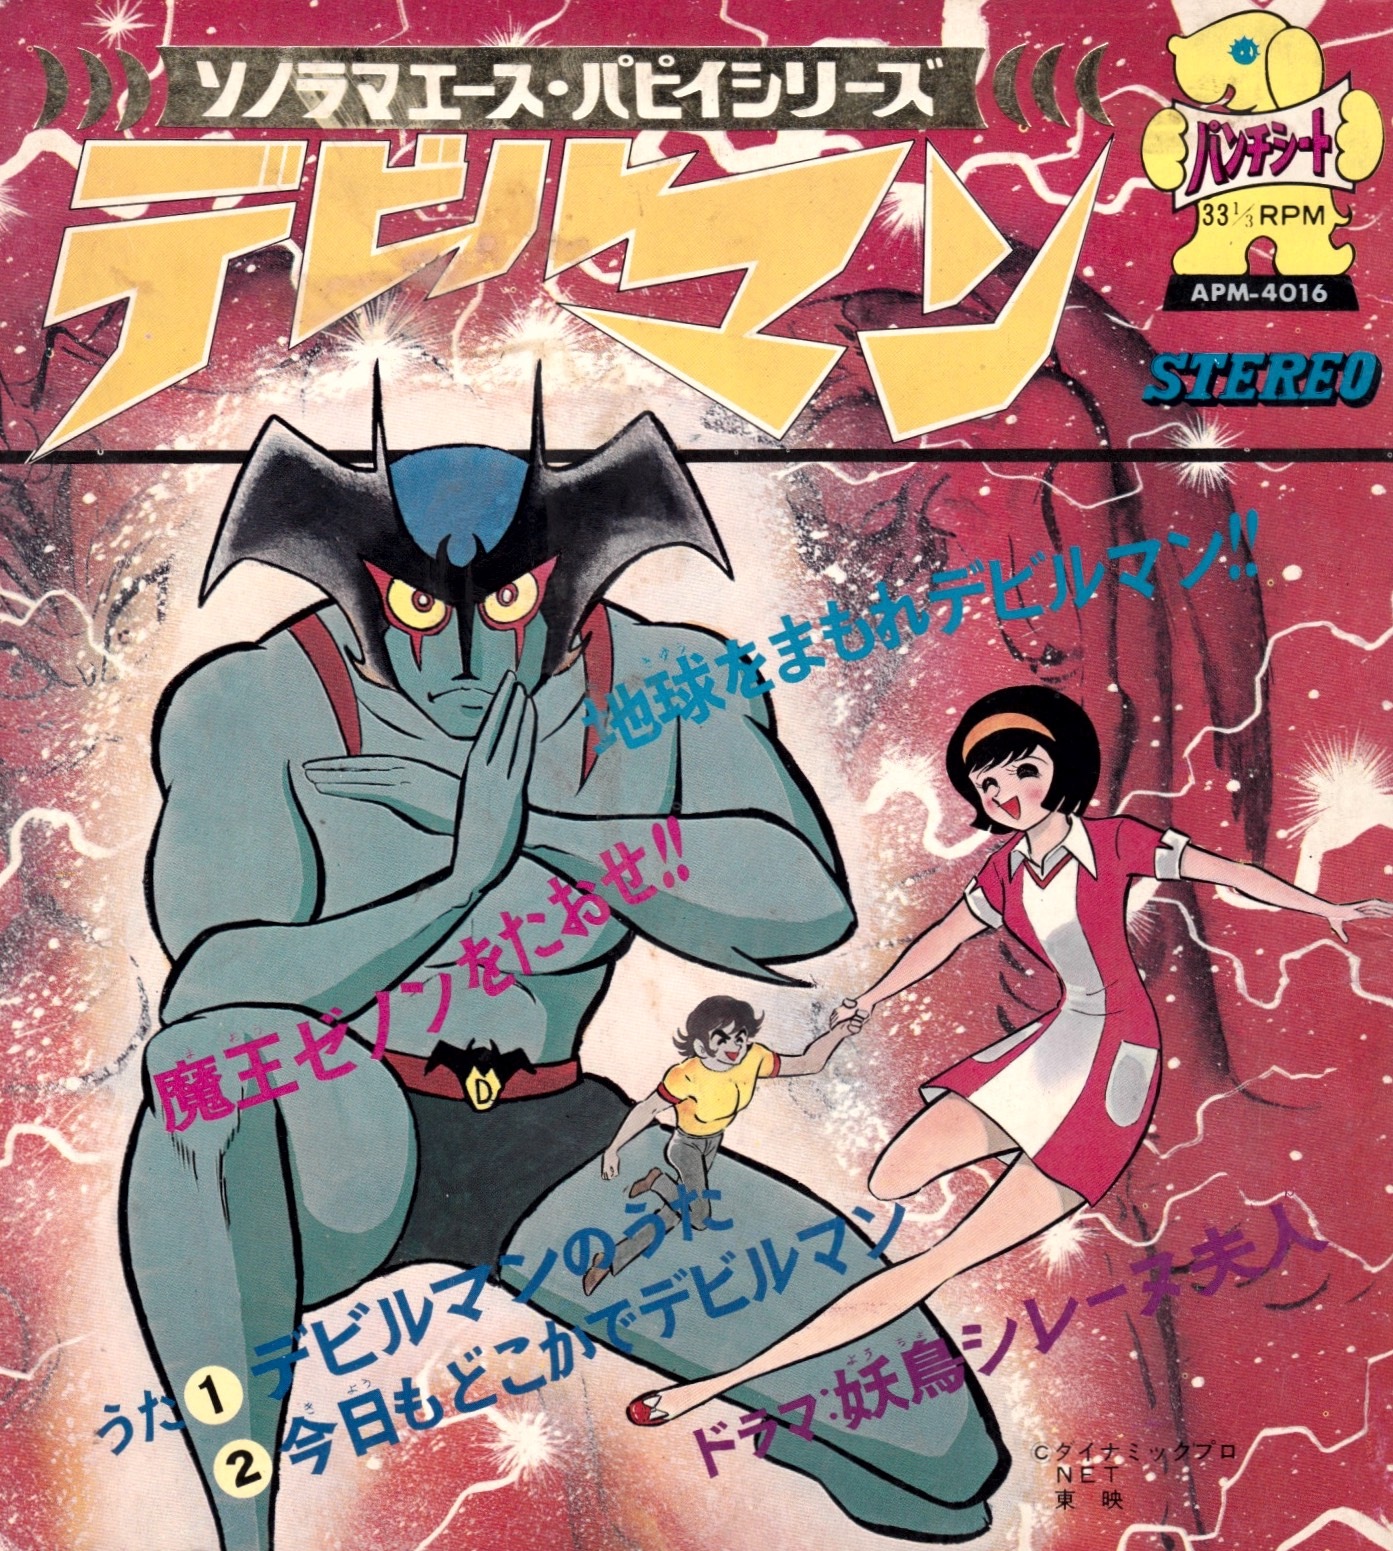 And Everything Else Too: Devilman デビルマン 70's Storybook And